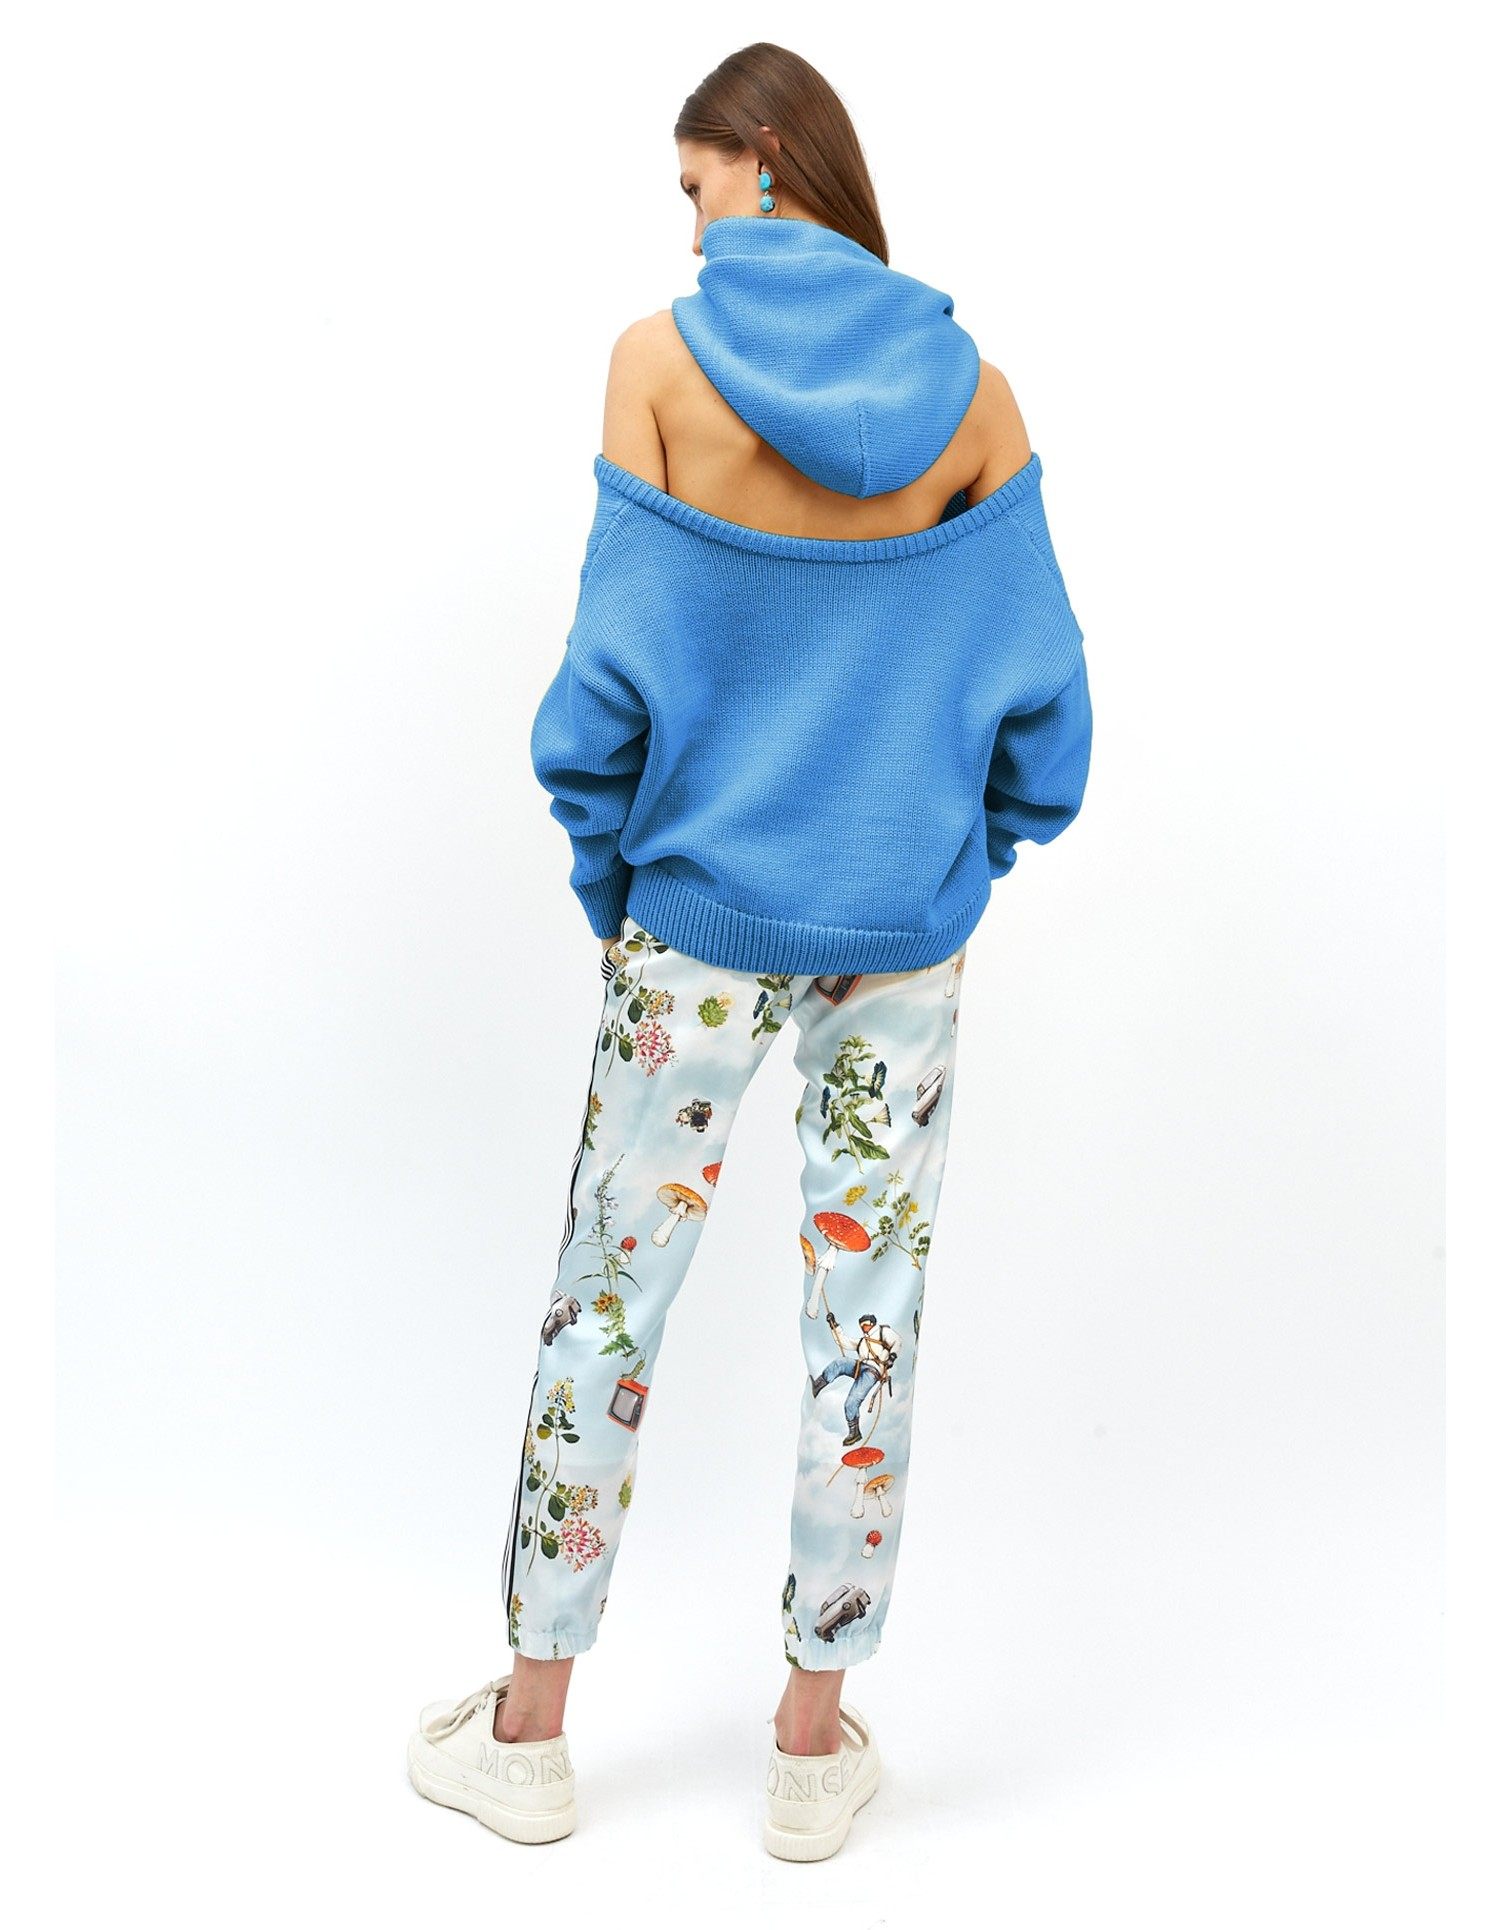 MONSE Halter Knit Hoodie in Azure Blue on Model No Background Full Front View